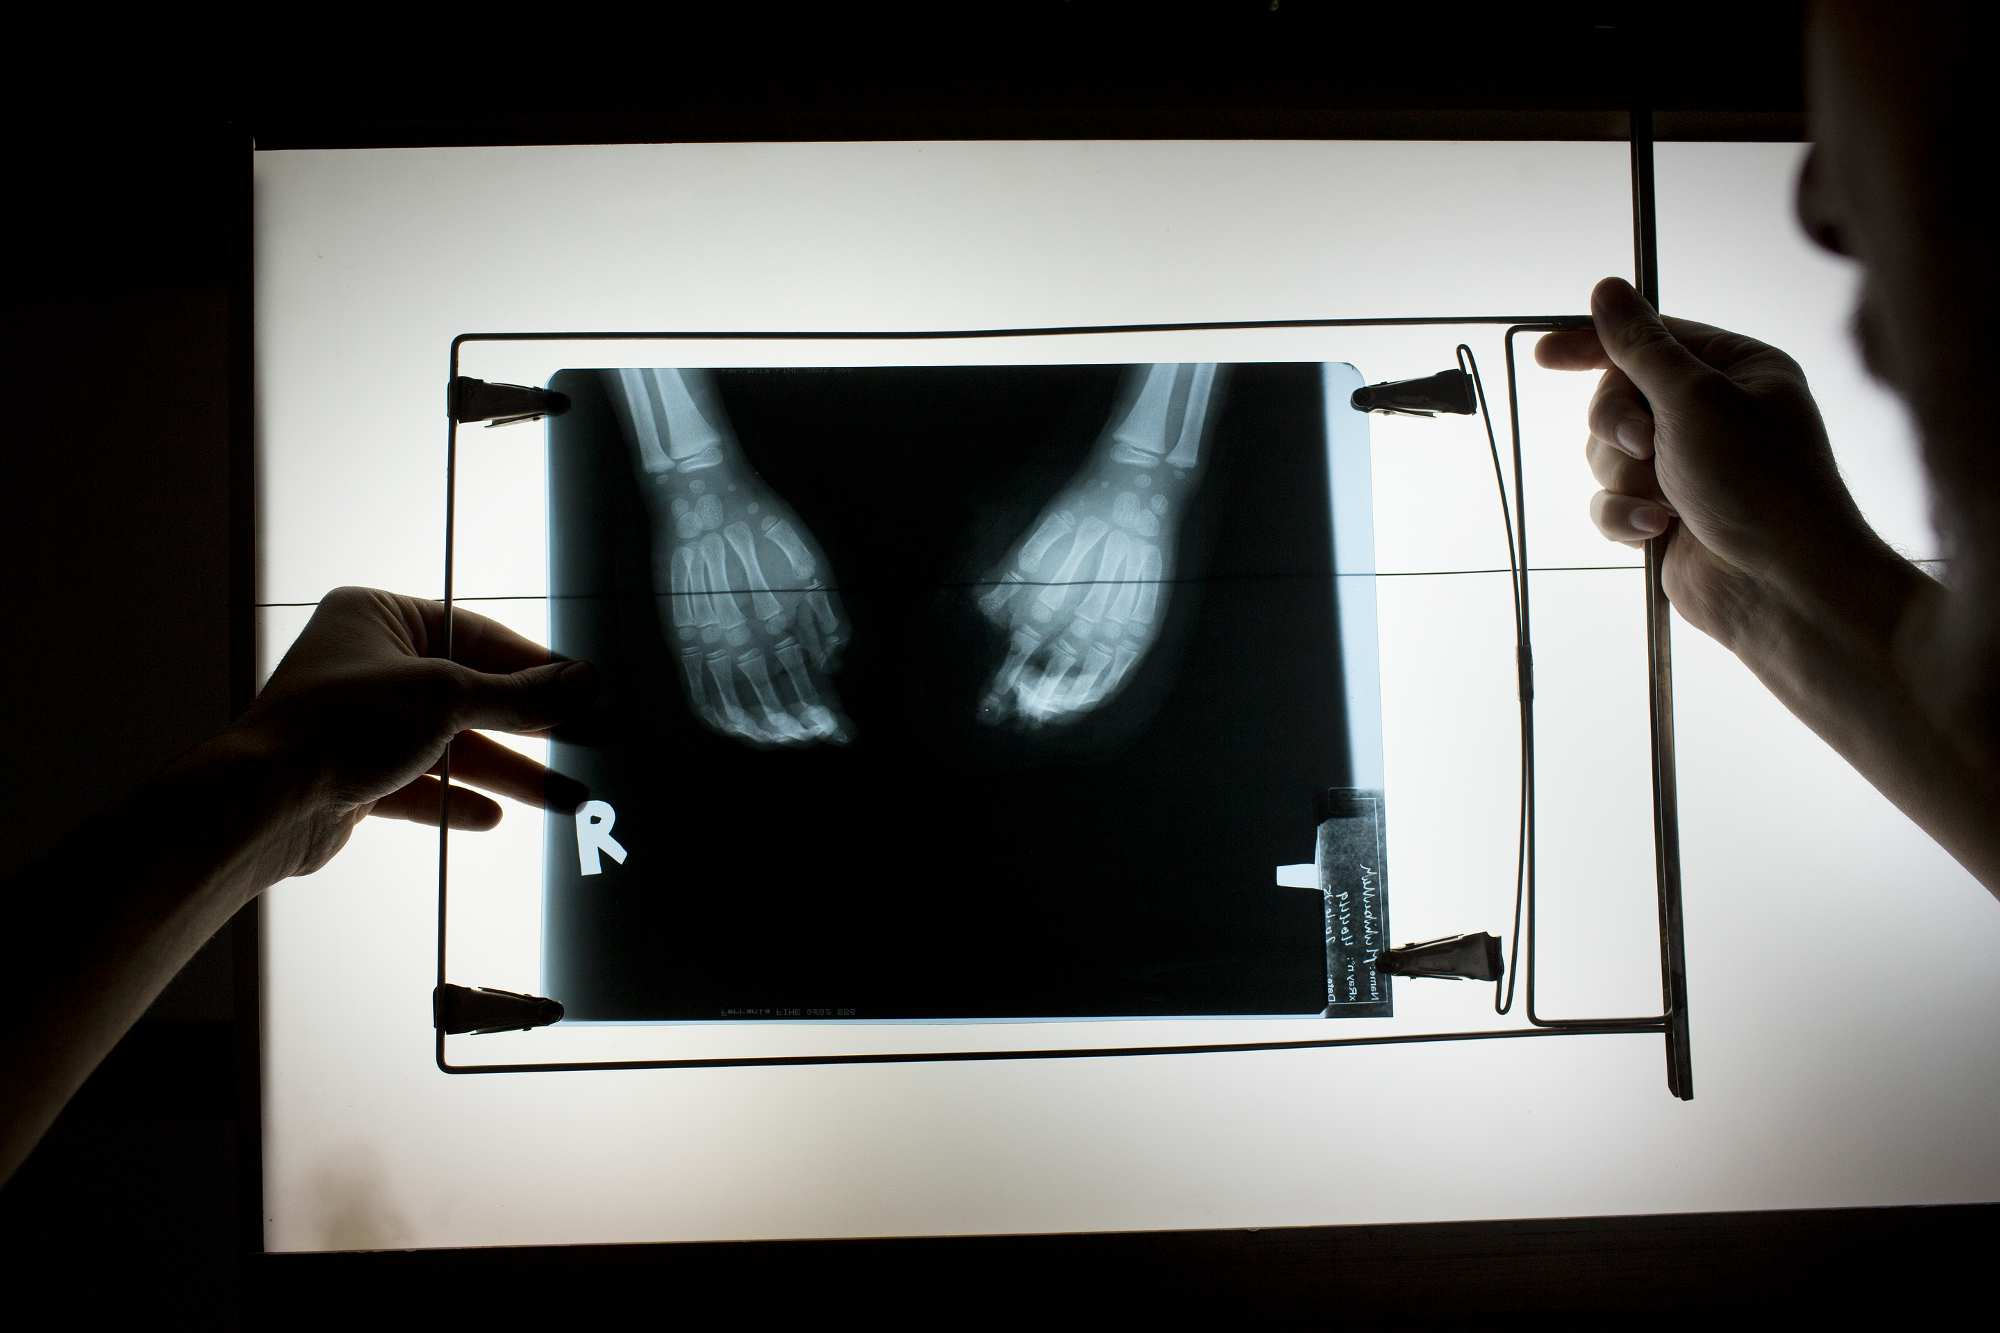 Doctors review Muhebullah's x-rays before a surgery to amputate some of his fingers.